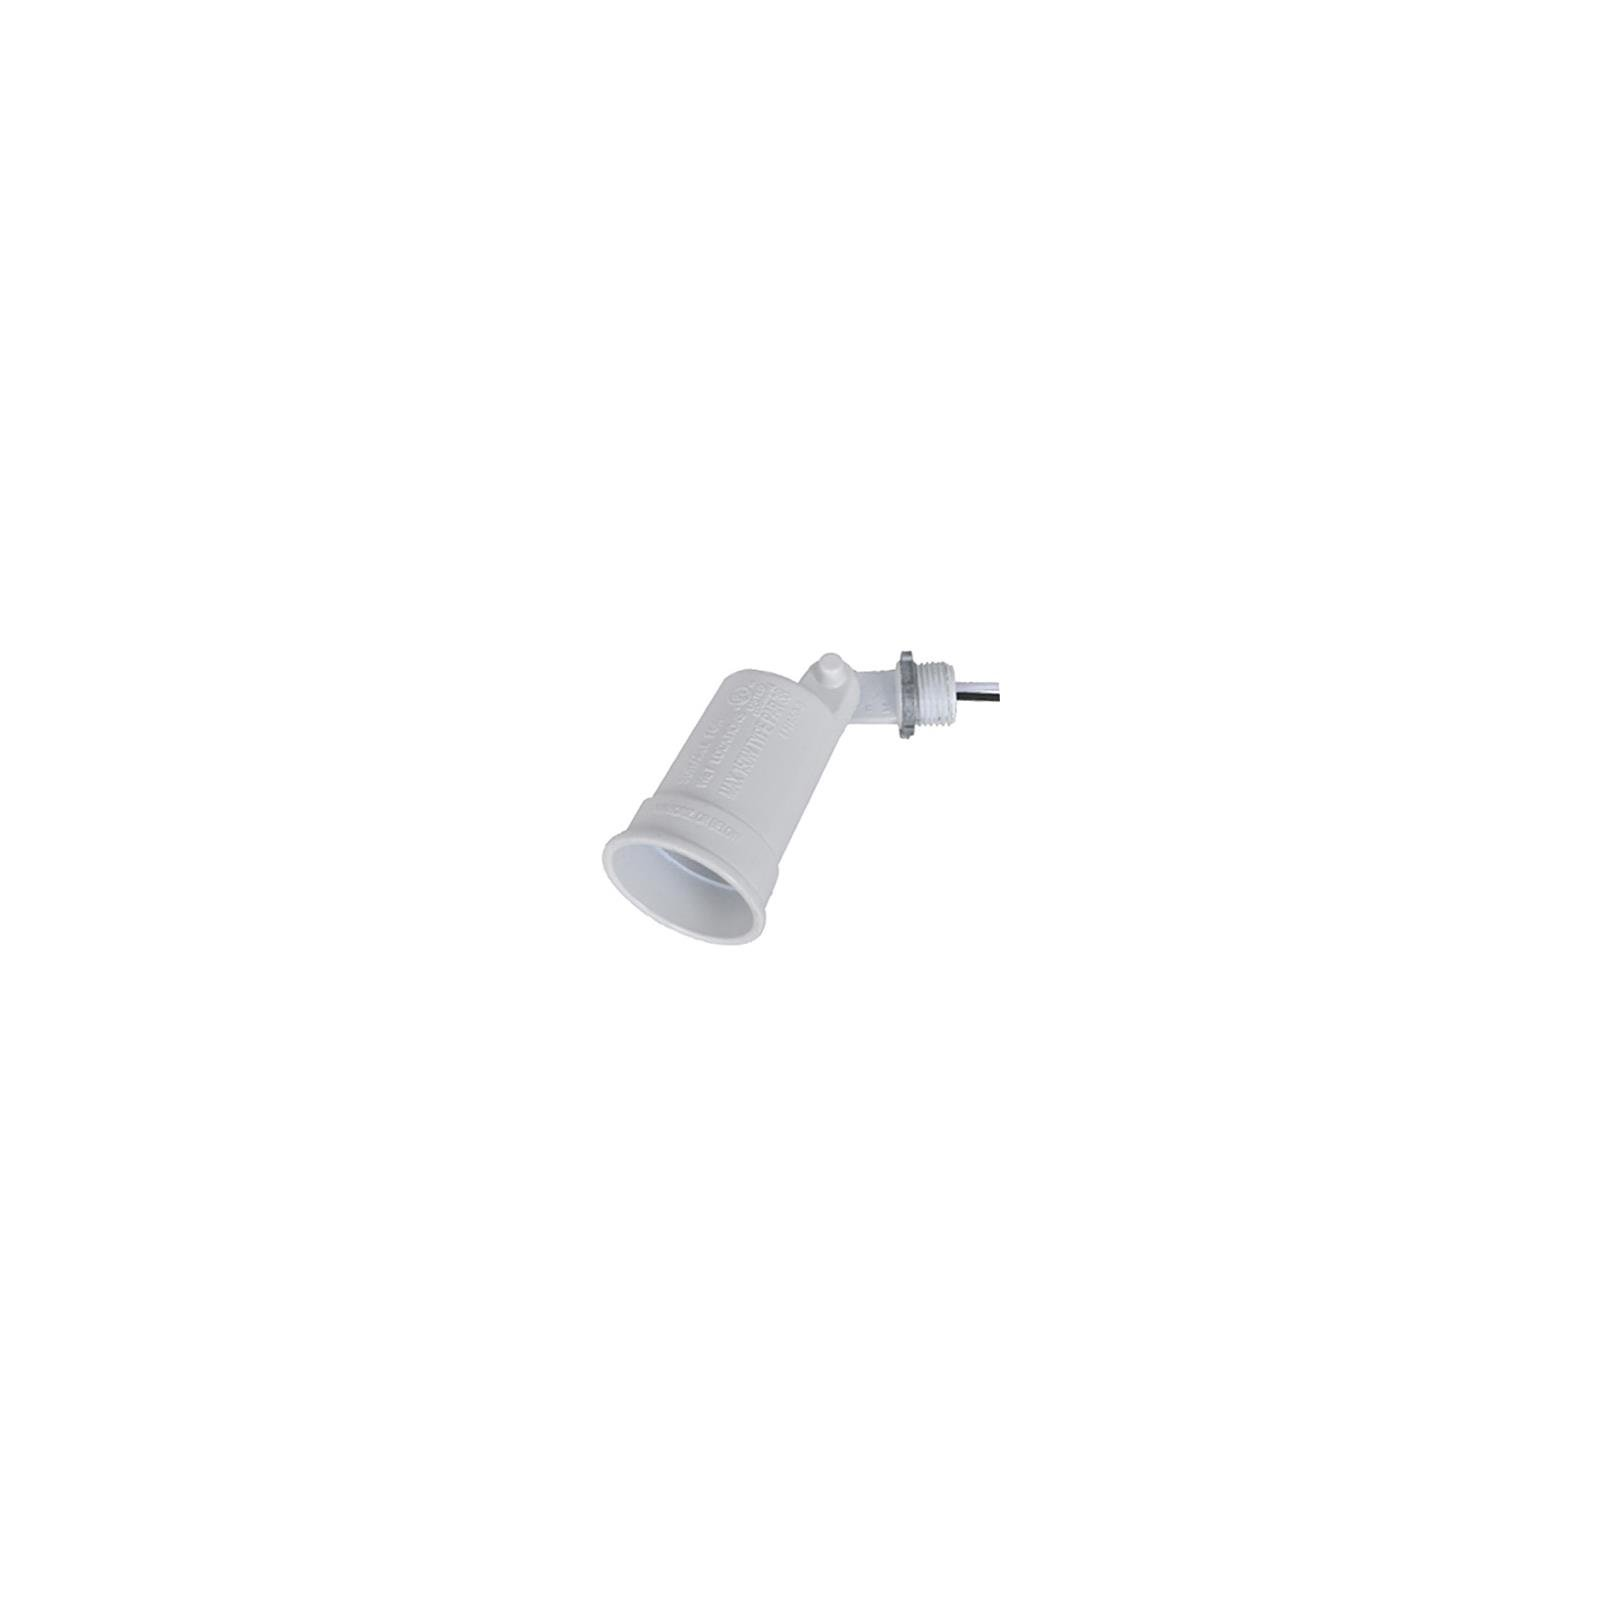 Hubbell Electrical Products LH150-2-W White Weatherproof Porcelain Socket Lampholder - Quantity 25